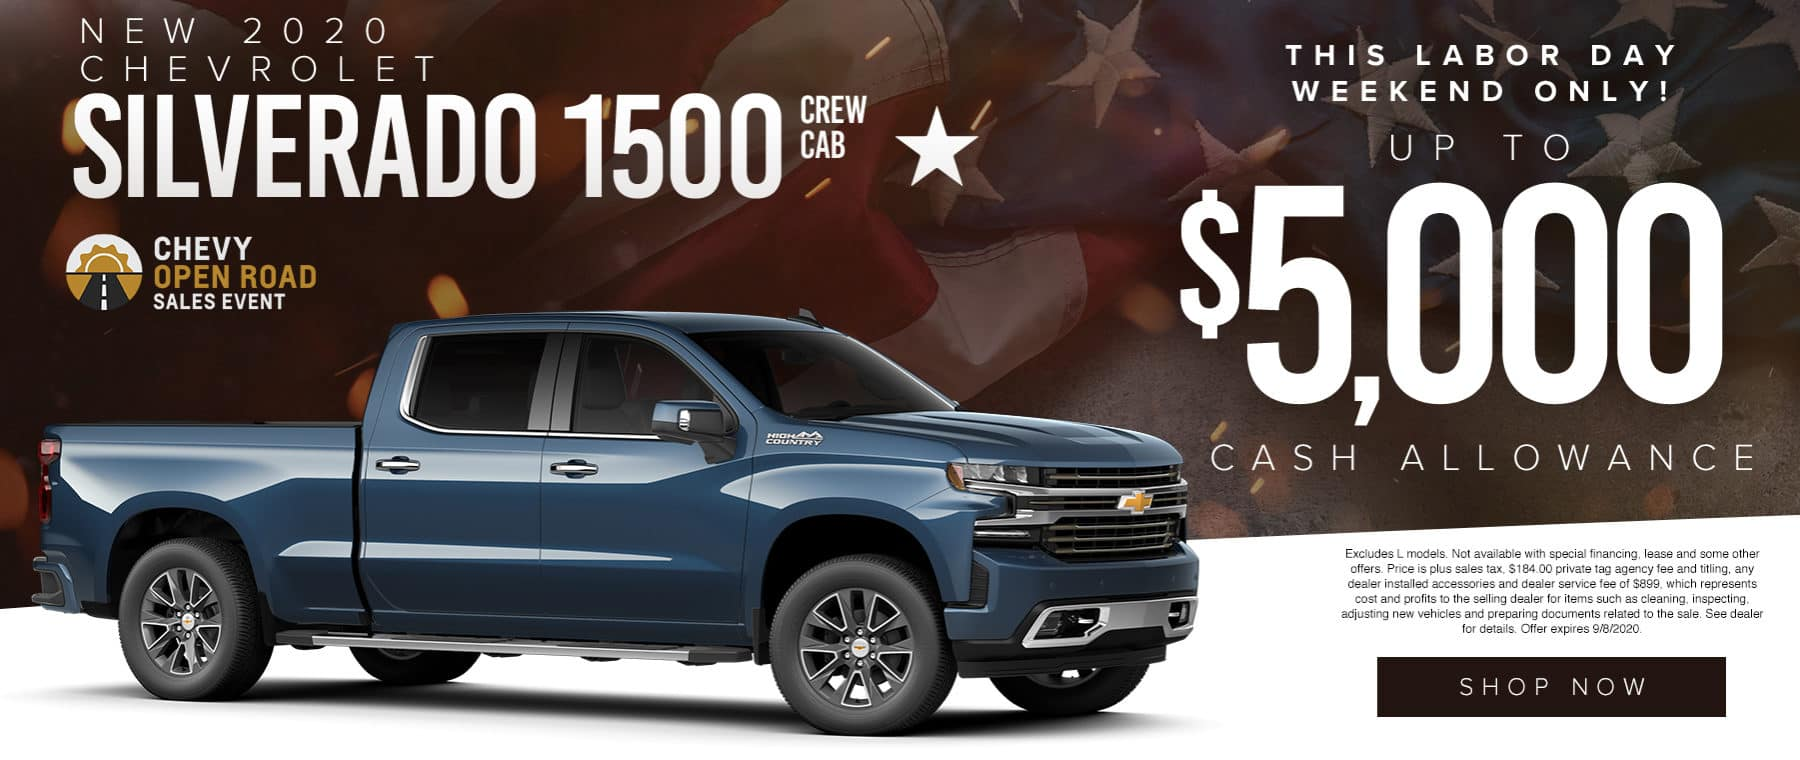 Chevy Open Road Sales Event | 2020 Silverado 1500 Crew Cab | Up To 5,000 Cash Allowance